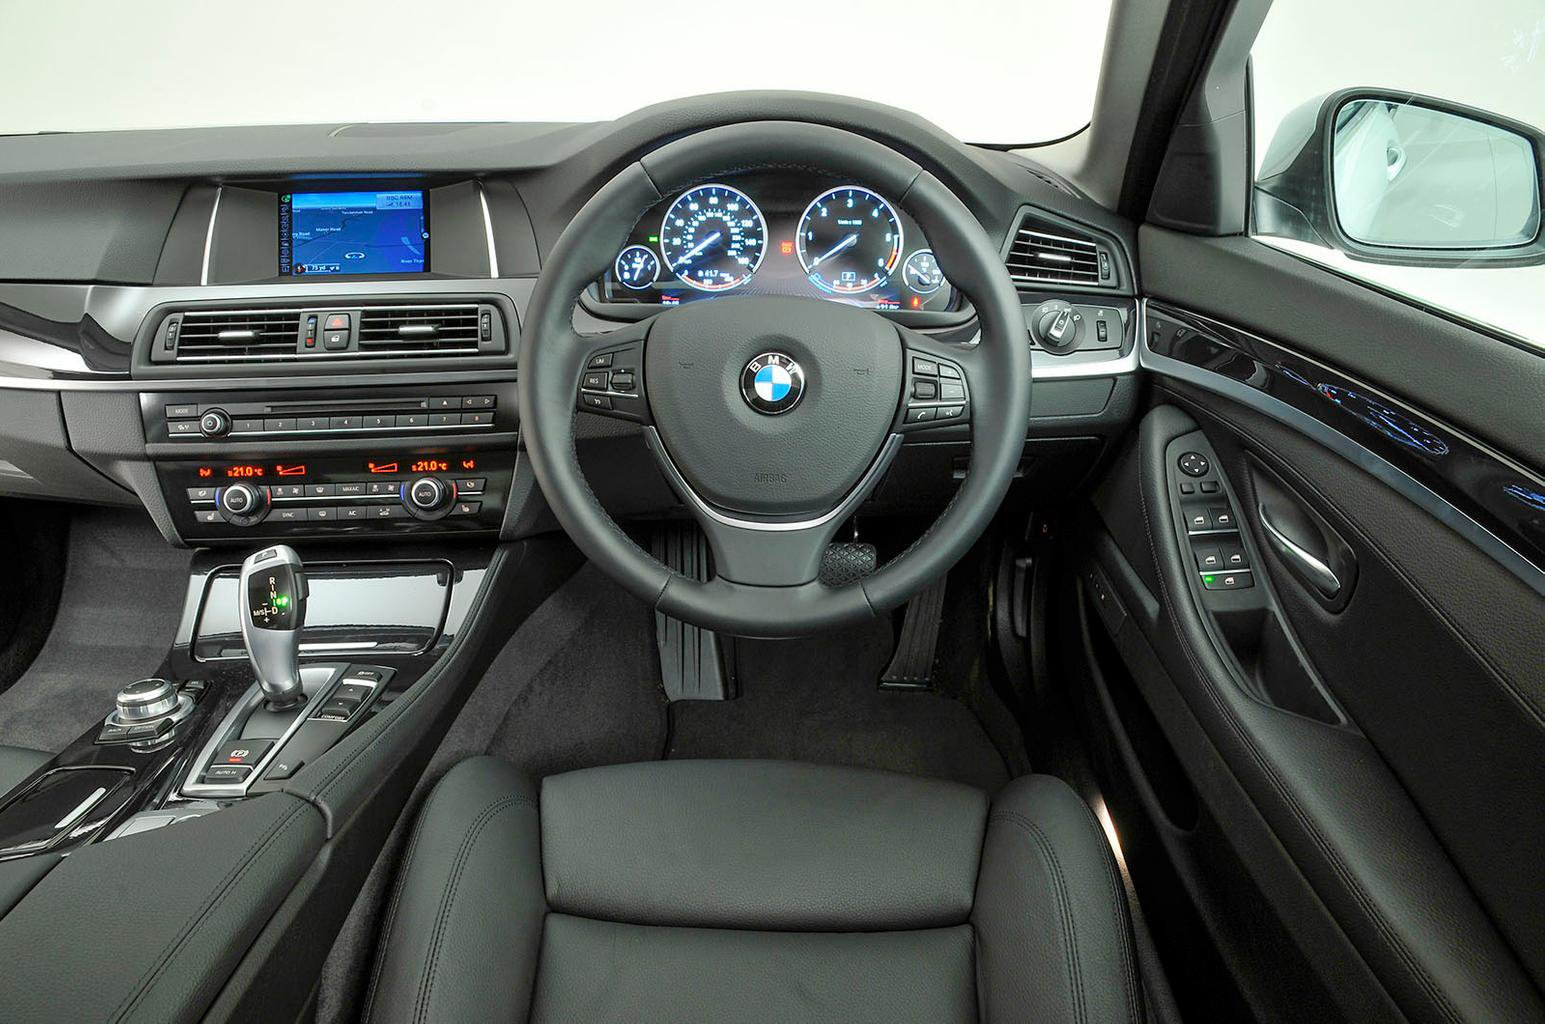 BMW 5 Series interior